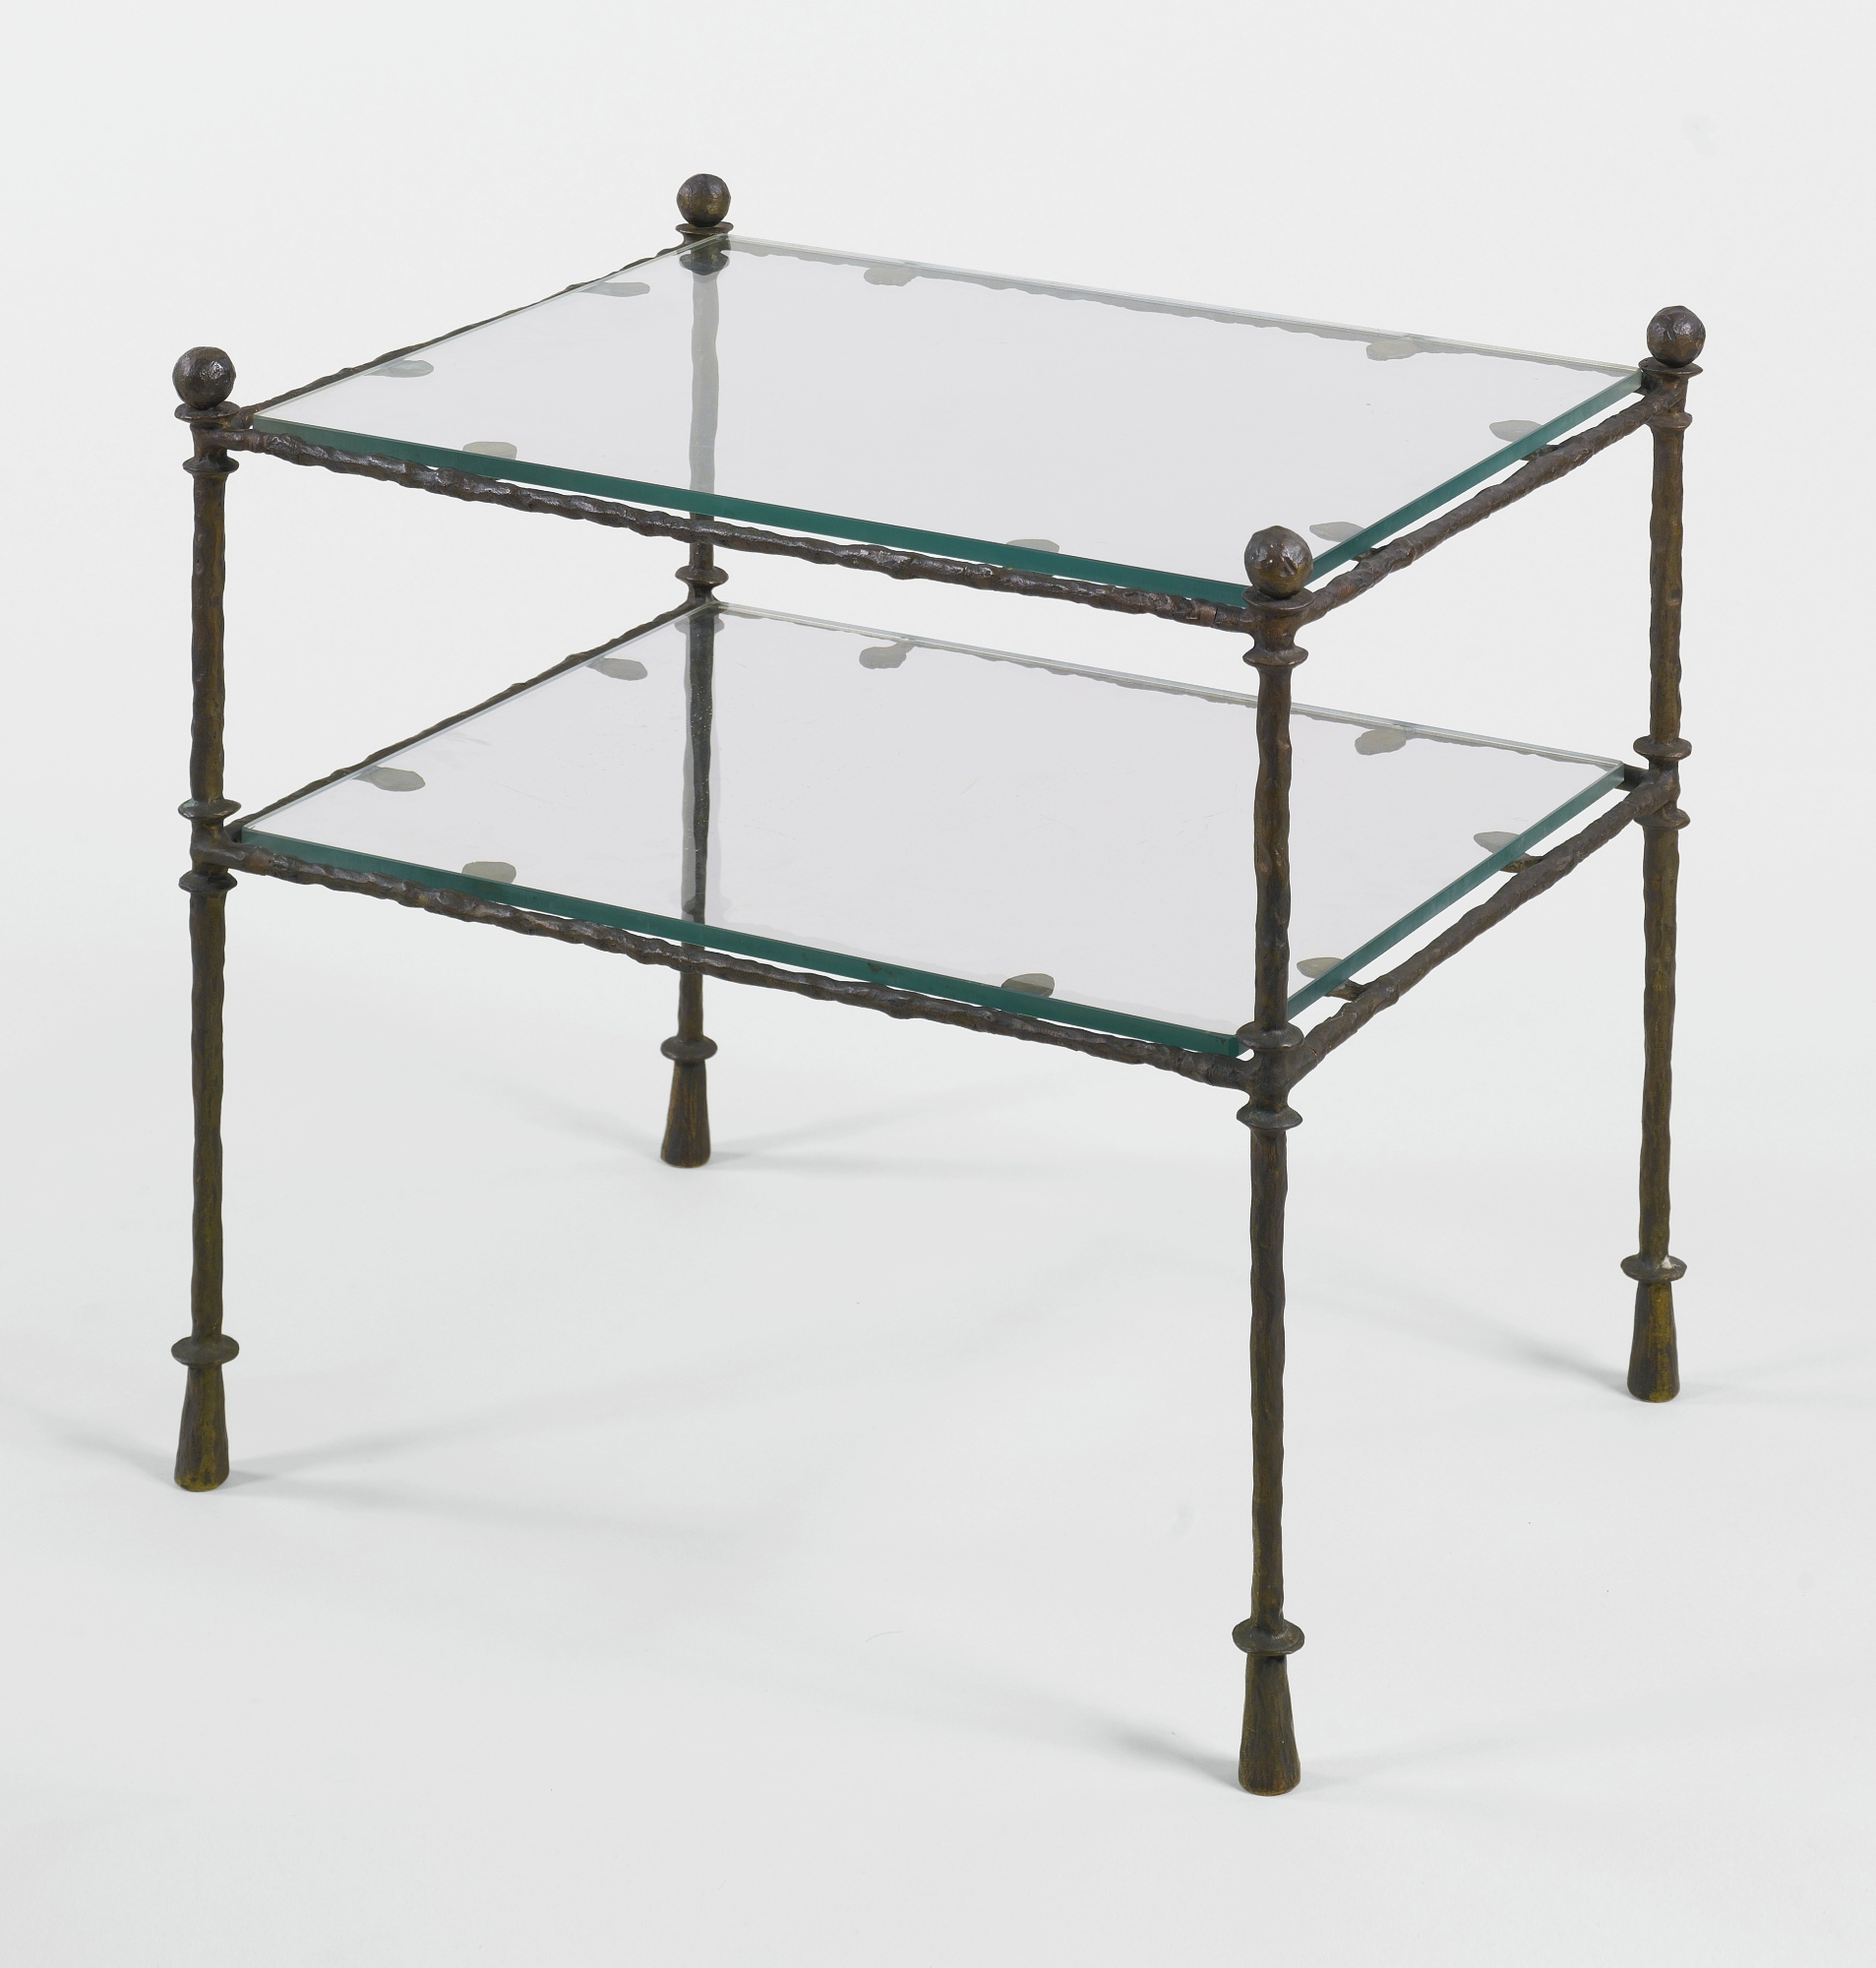 Diego giacometti petite table d 39 appoint - Petite table appoint ...